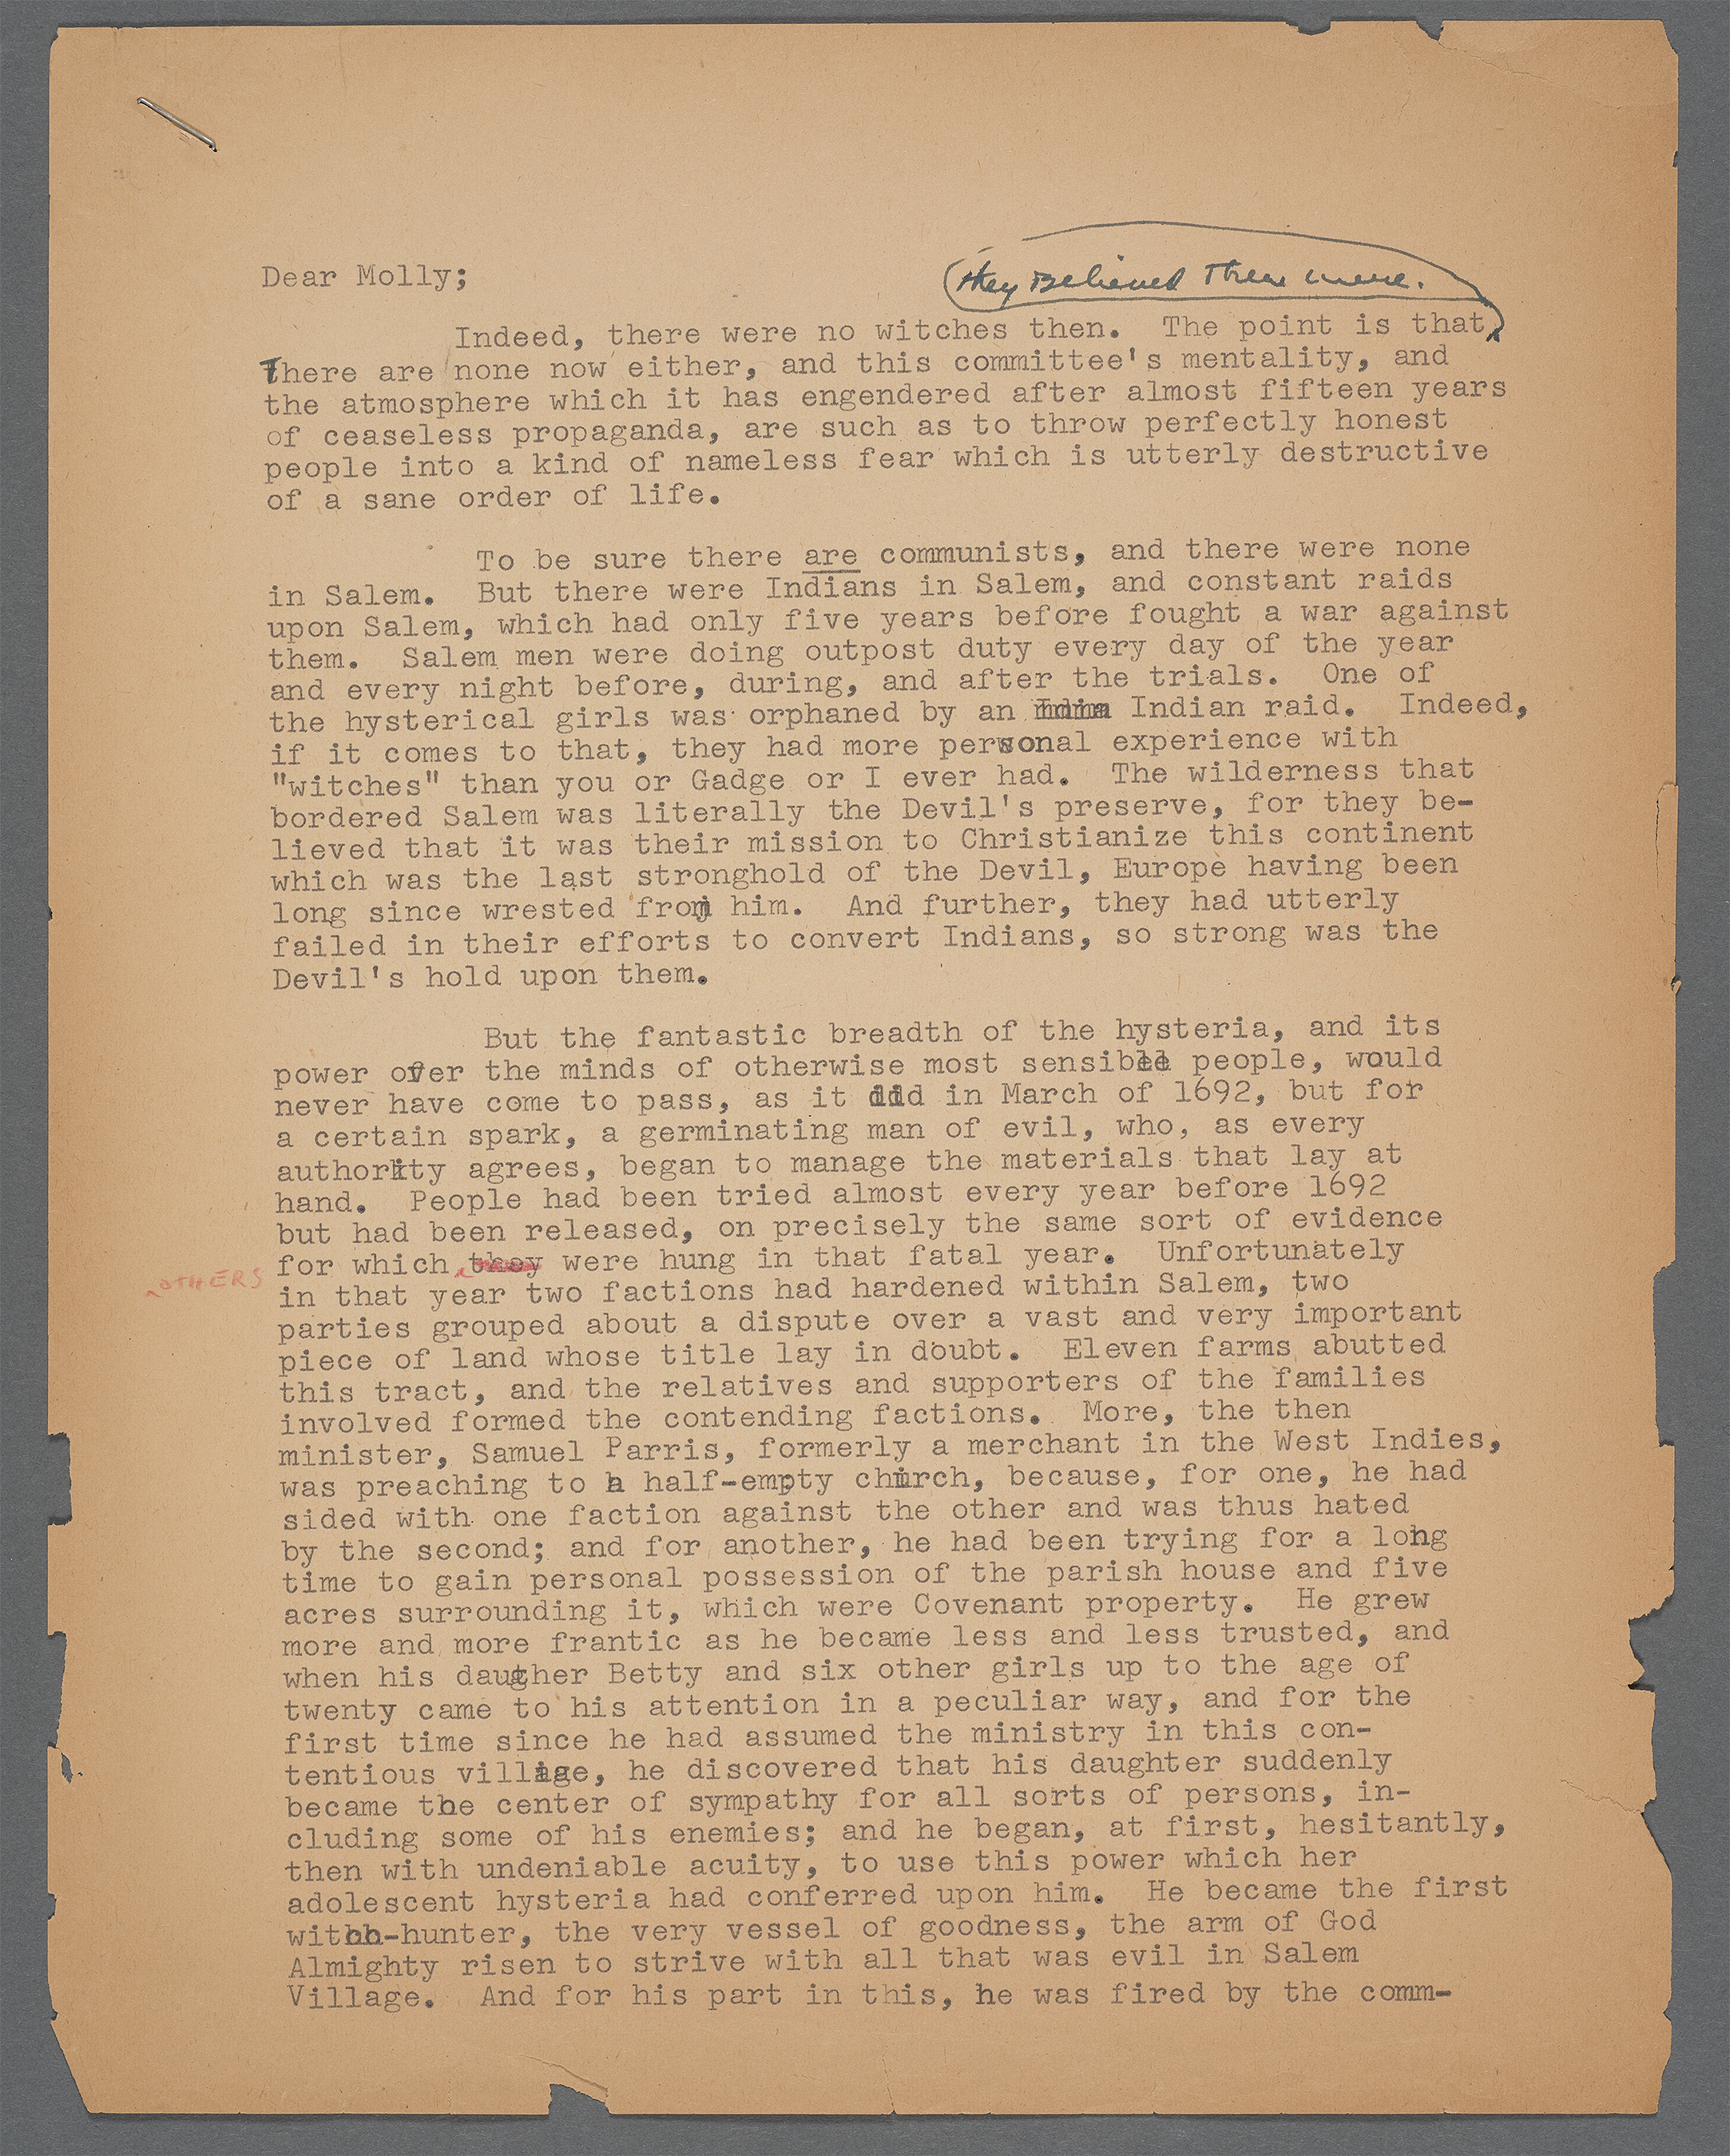 Typed letter 1952. When Arthur Miller refused to support Elia Kazan's decision to testify before the House Committee on Un-American Activities and provide names of suspected communists working in film or theatre, Kazan's wife Molly lashed out at Miller. Miller was just beginning work on The Crucible, and Molly Kazan argued that the parallels Miller was making from witches to communists was not helpful. Miller responded by carefully outlining why he felt his argument was sound, why the play would work, and why her husband was still wrong to testify.